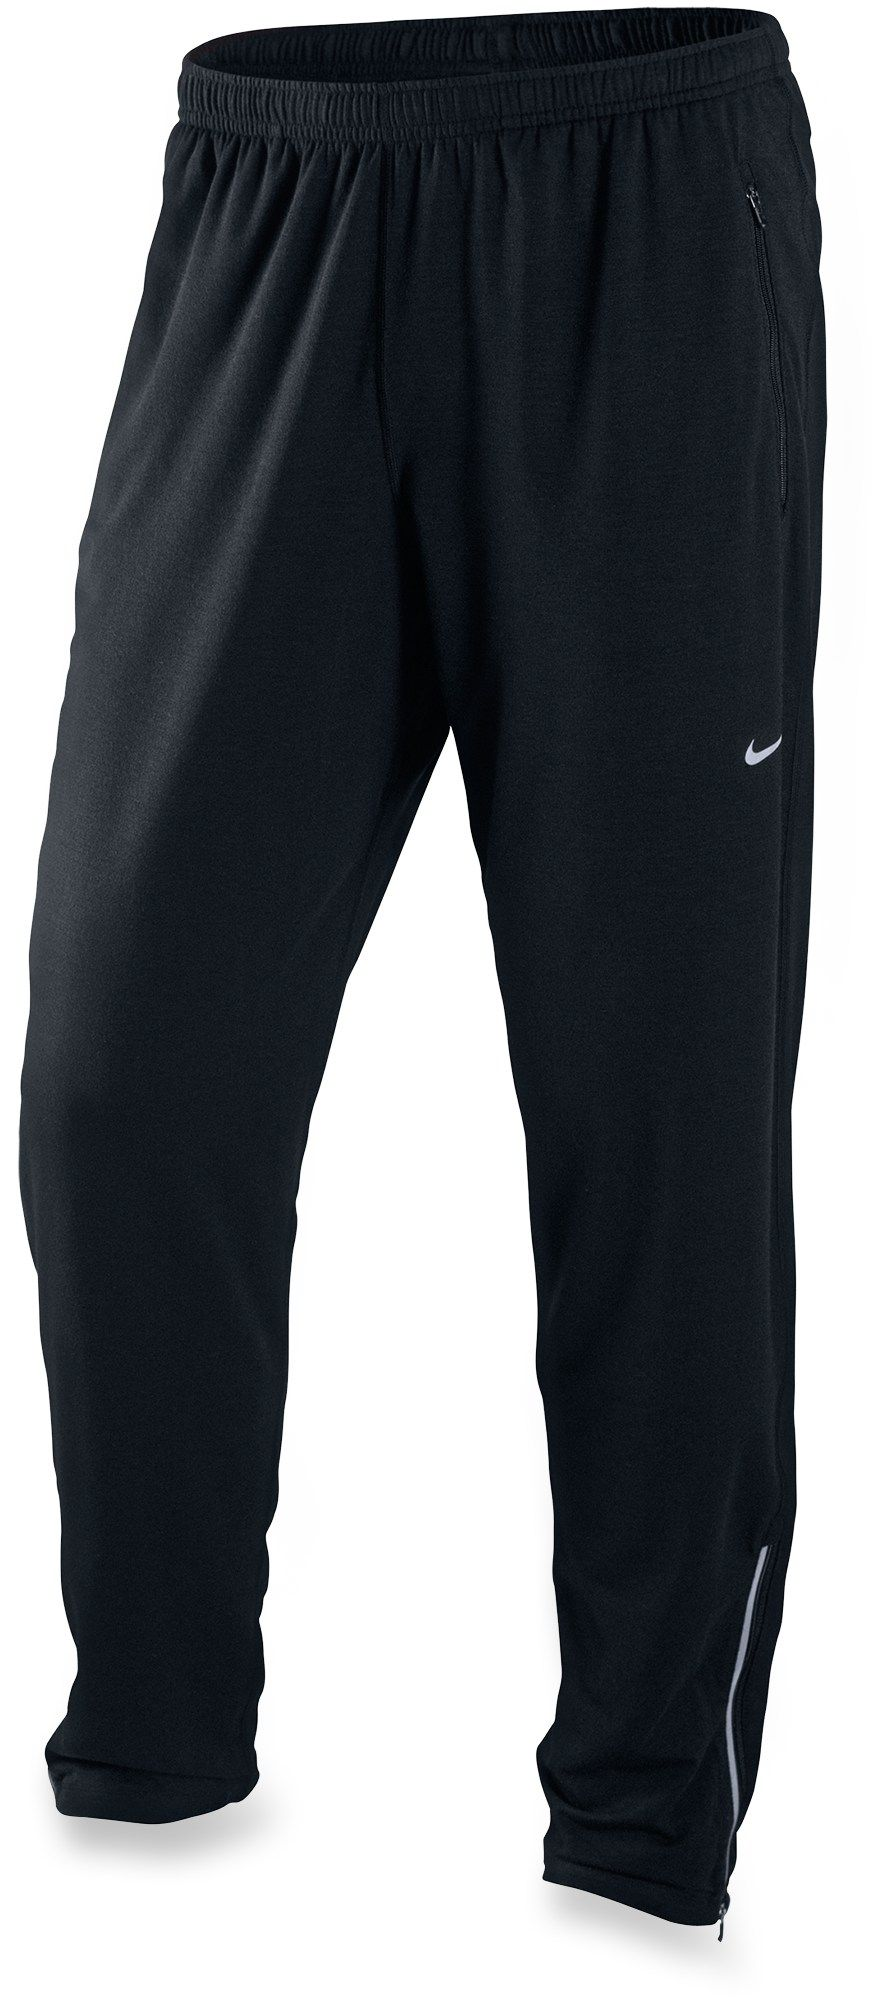 b961e03c3d8e Nike Perfect Track Pants - Men s - Free Shipping at REI.com  basically sweat  pants that i can wearing hiking or running that isn t baggy